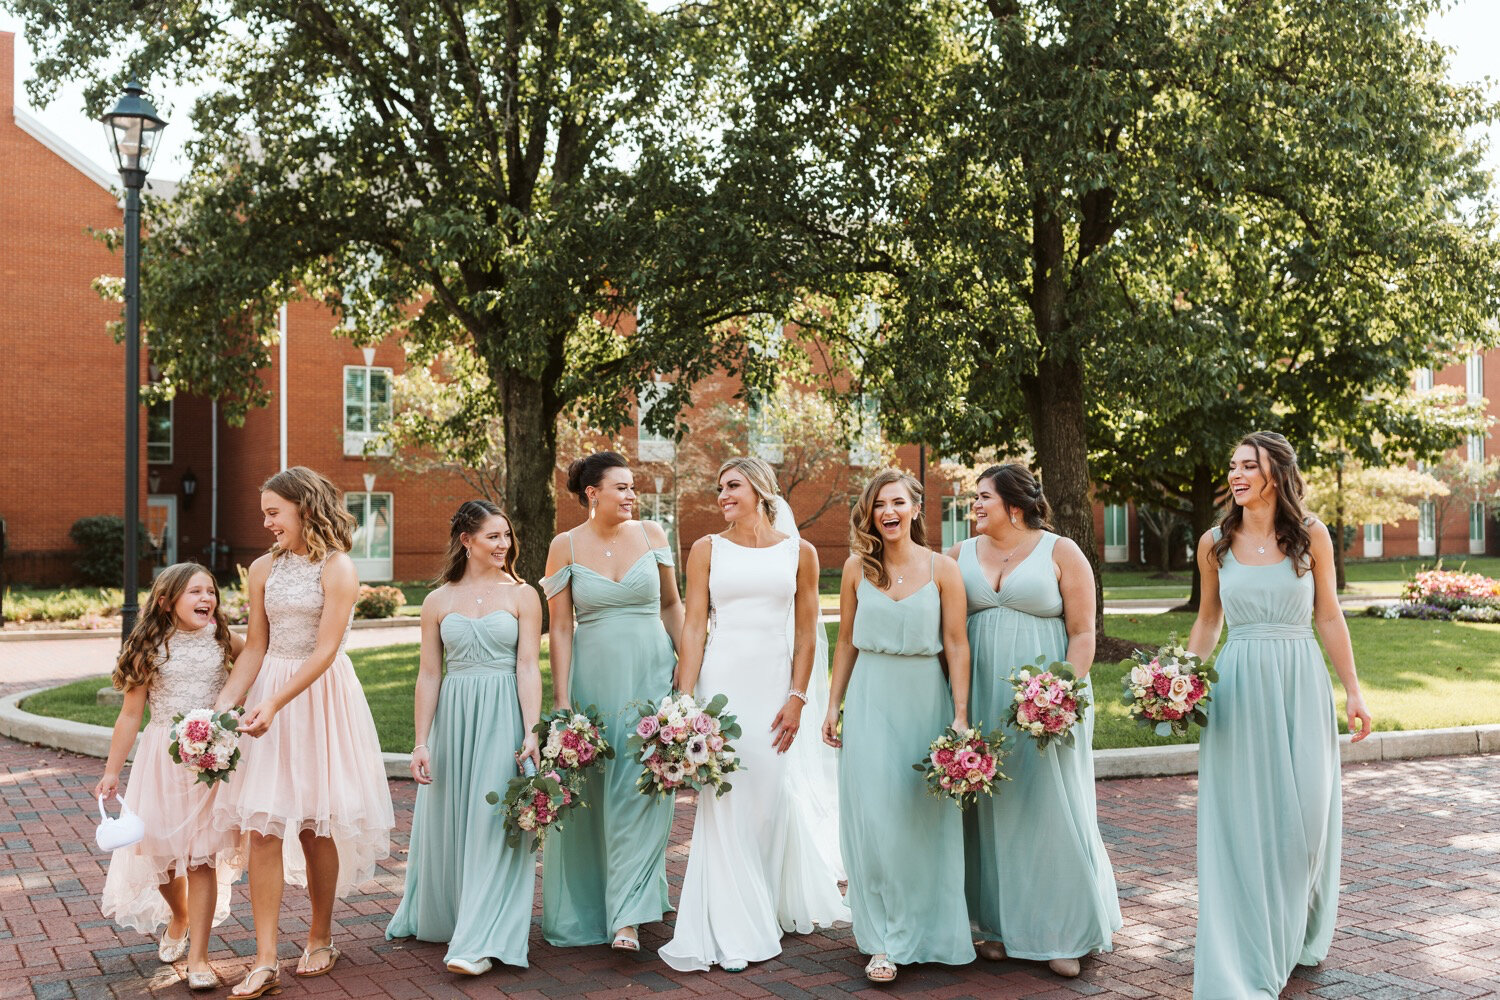 Bridesmaid group pictures